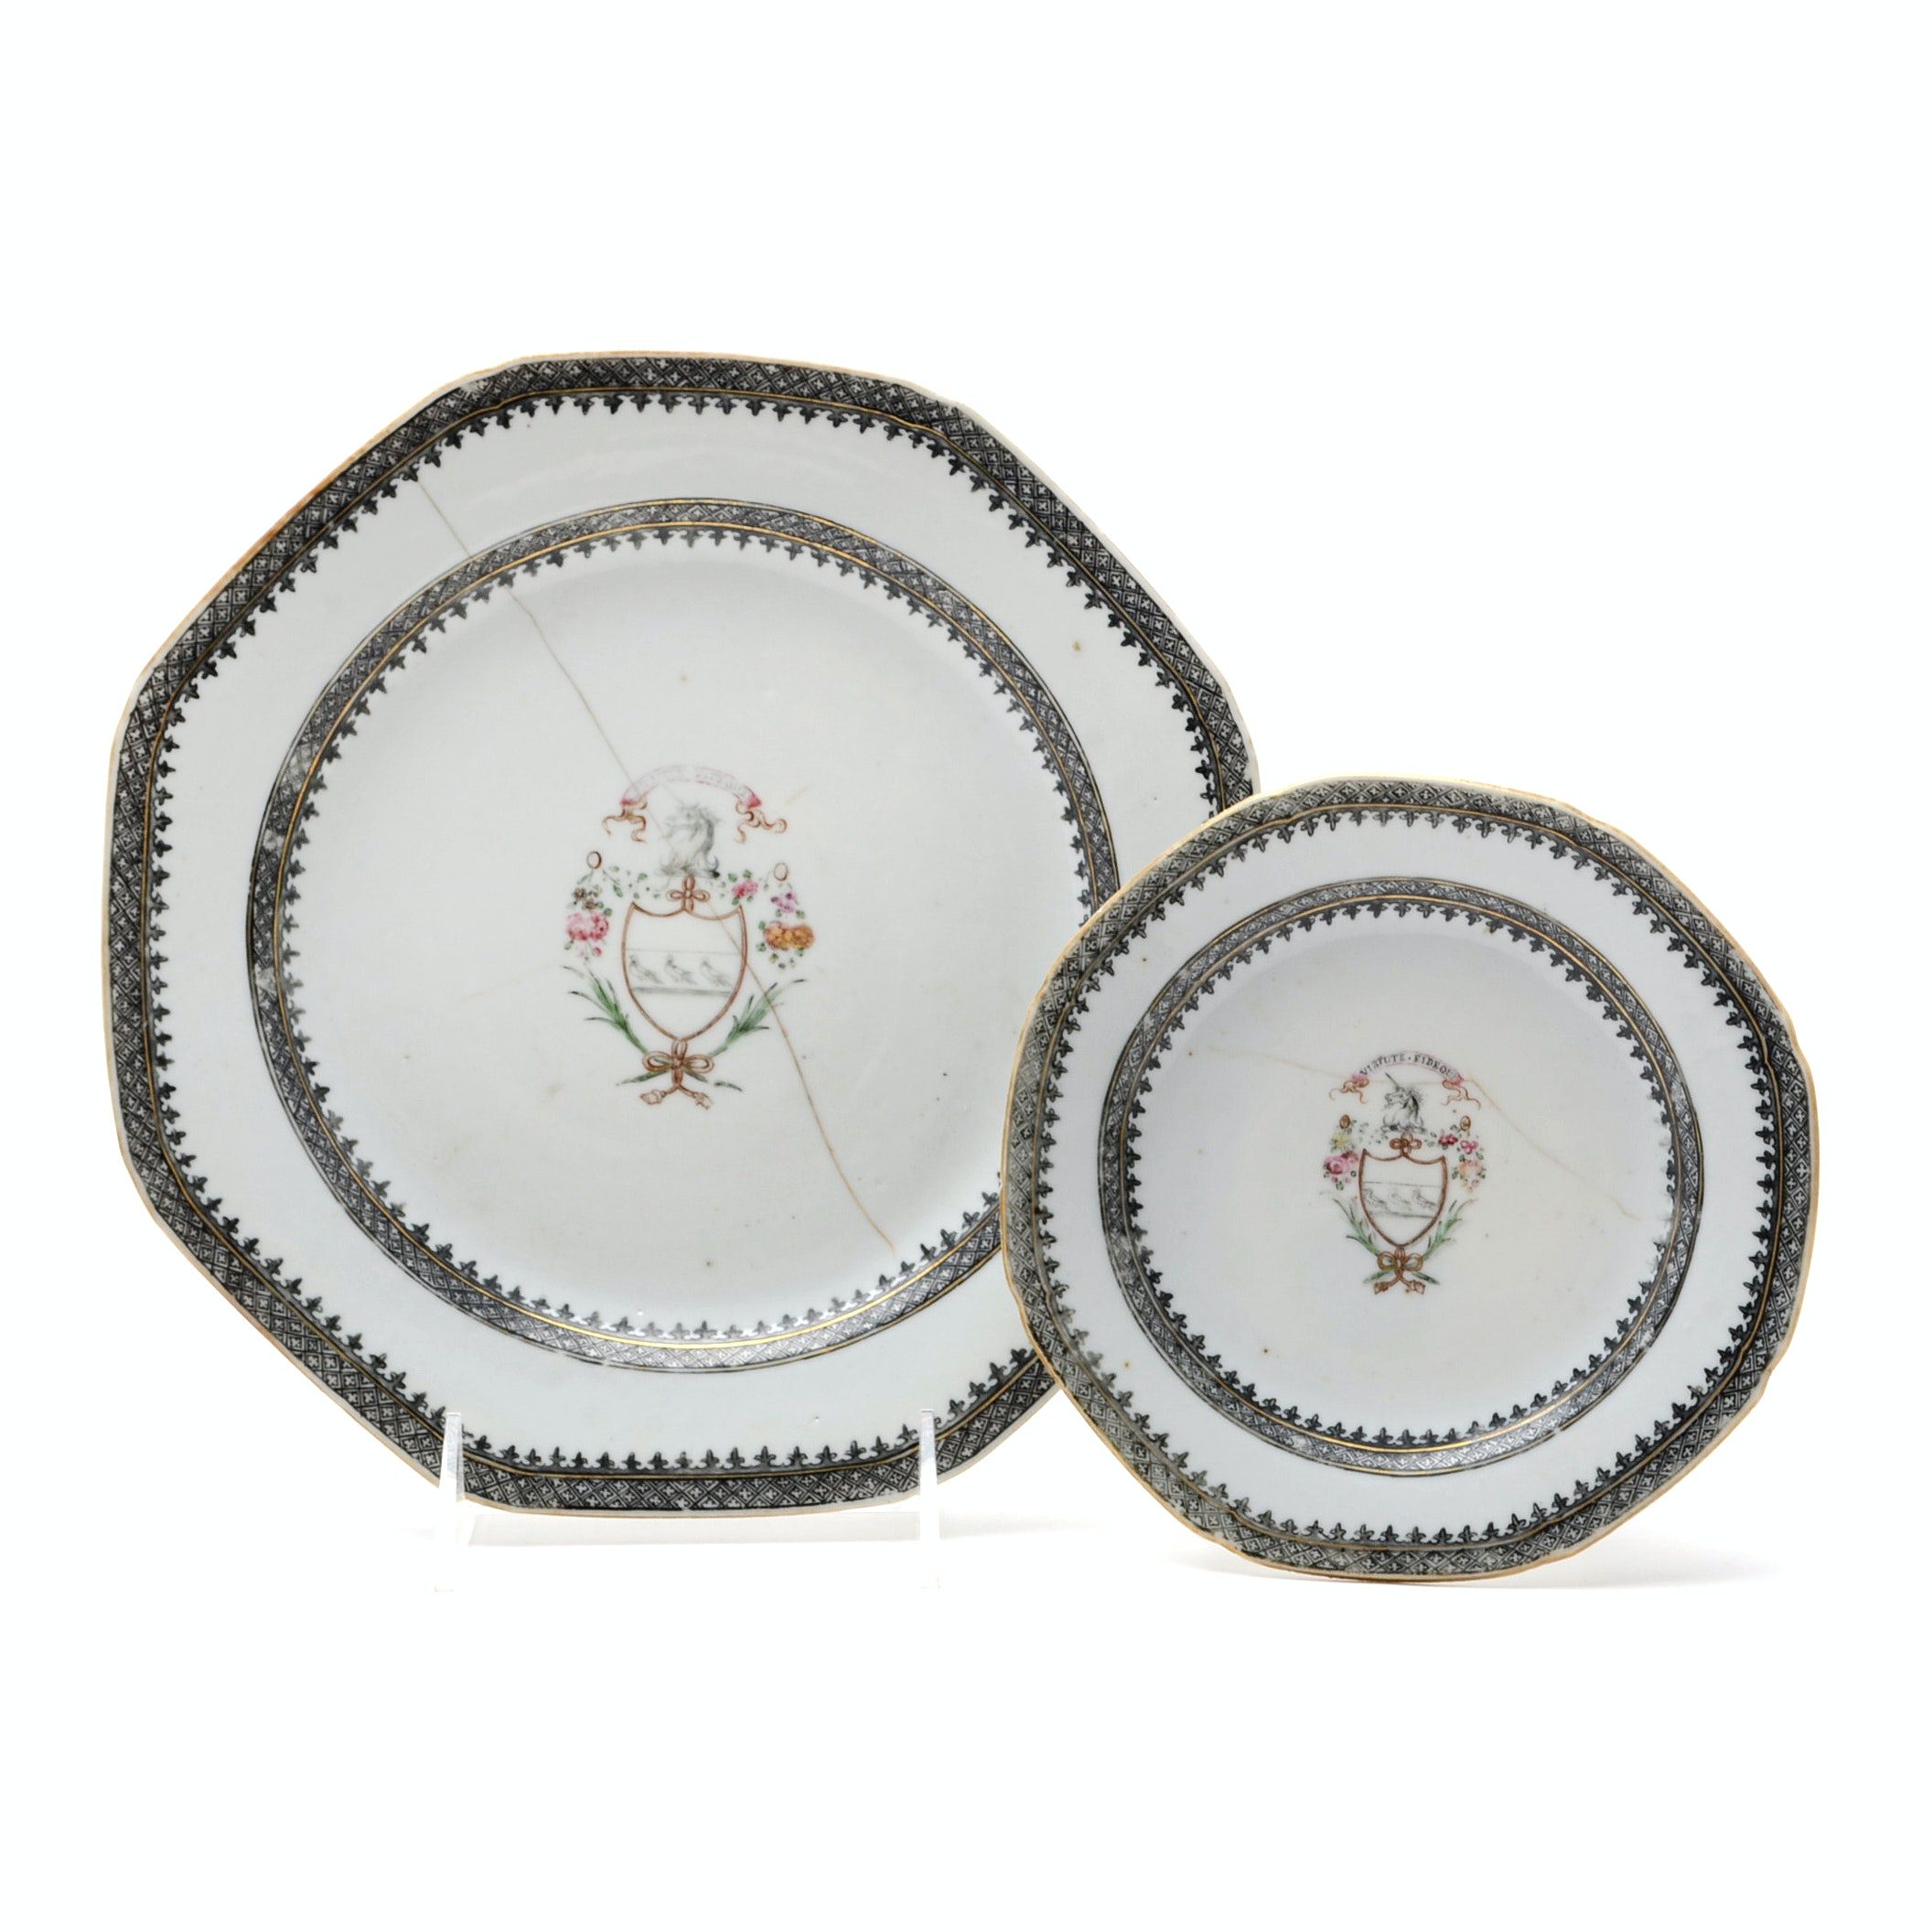 Chinese Export Porcelain Armorial Export Plates